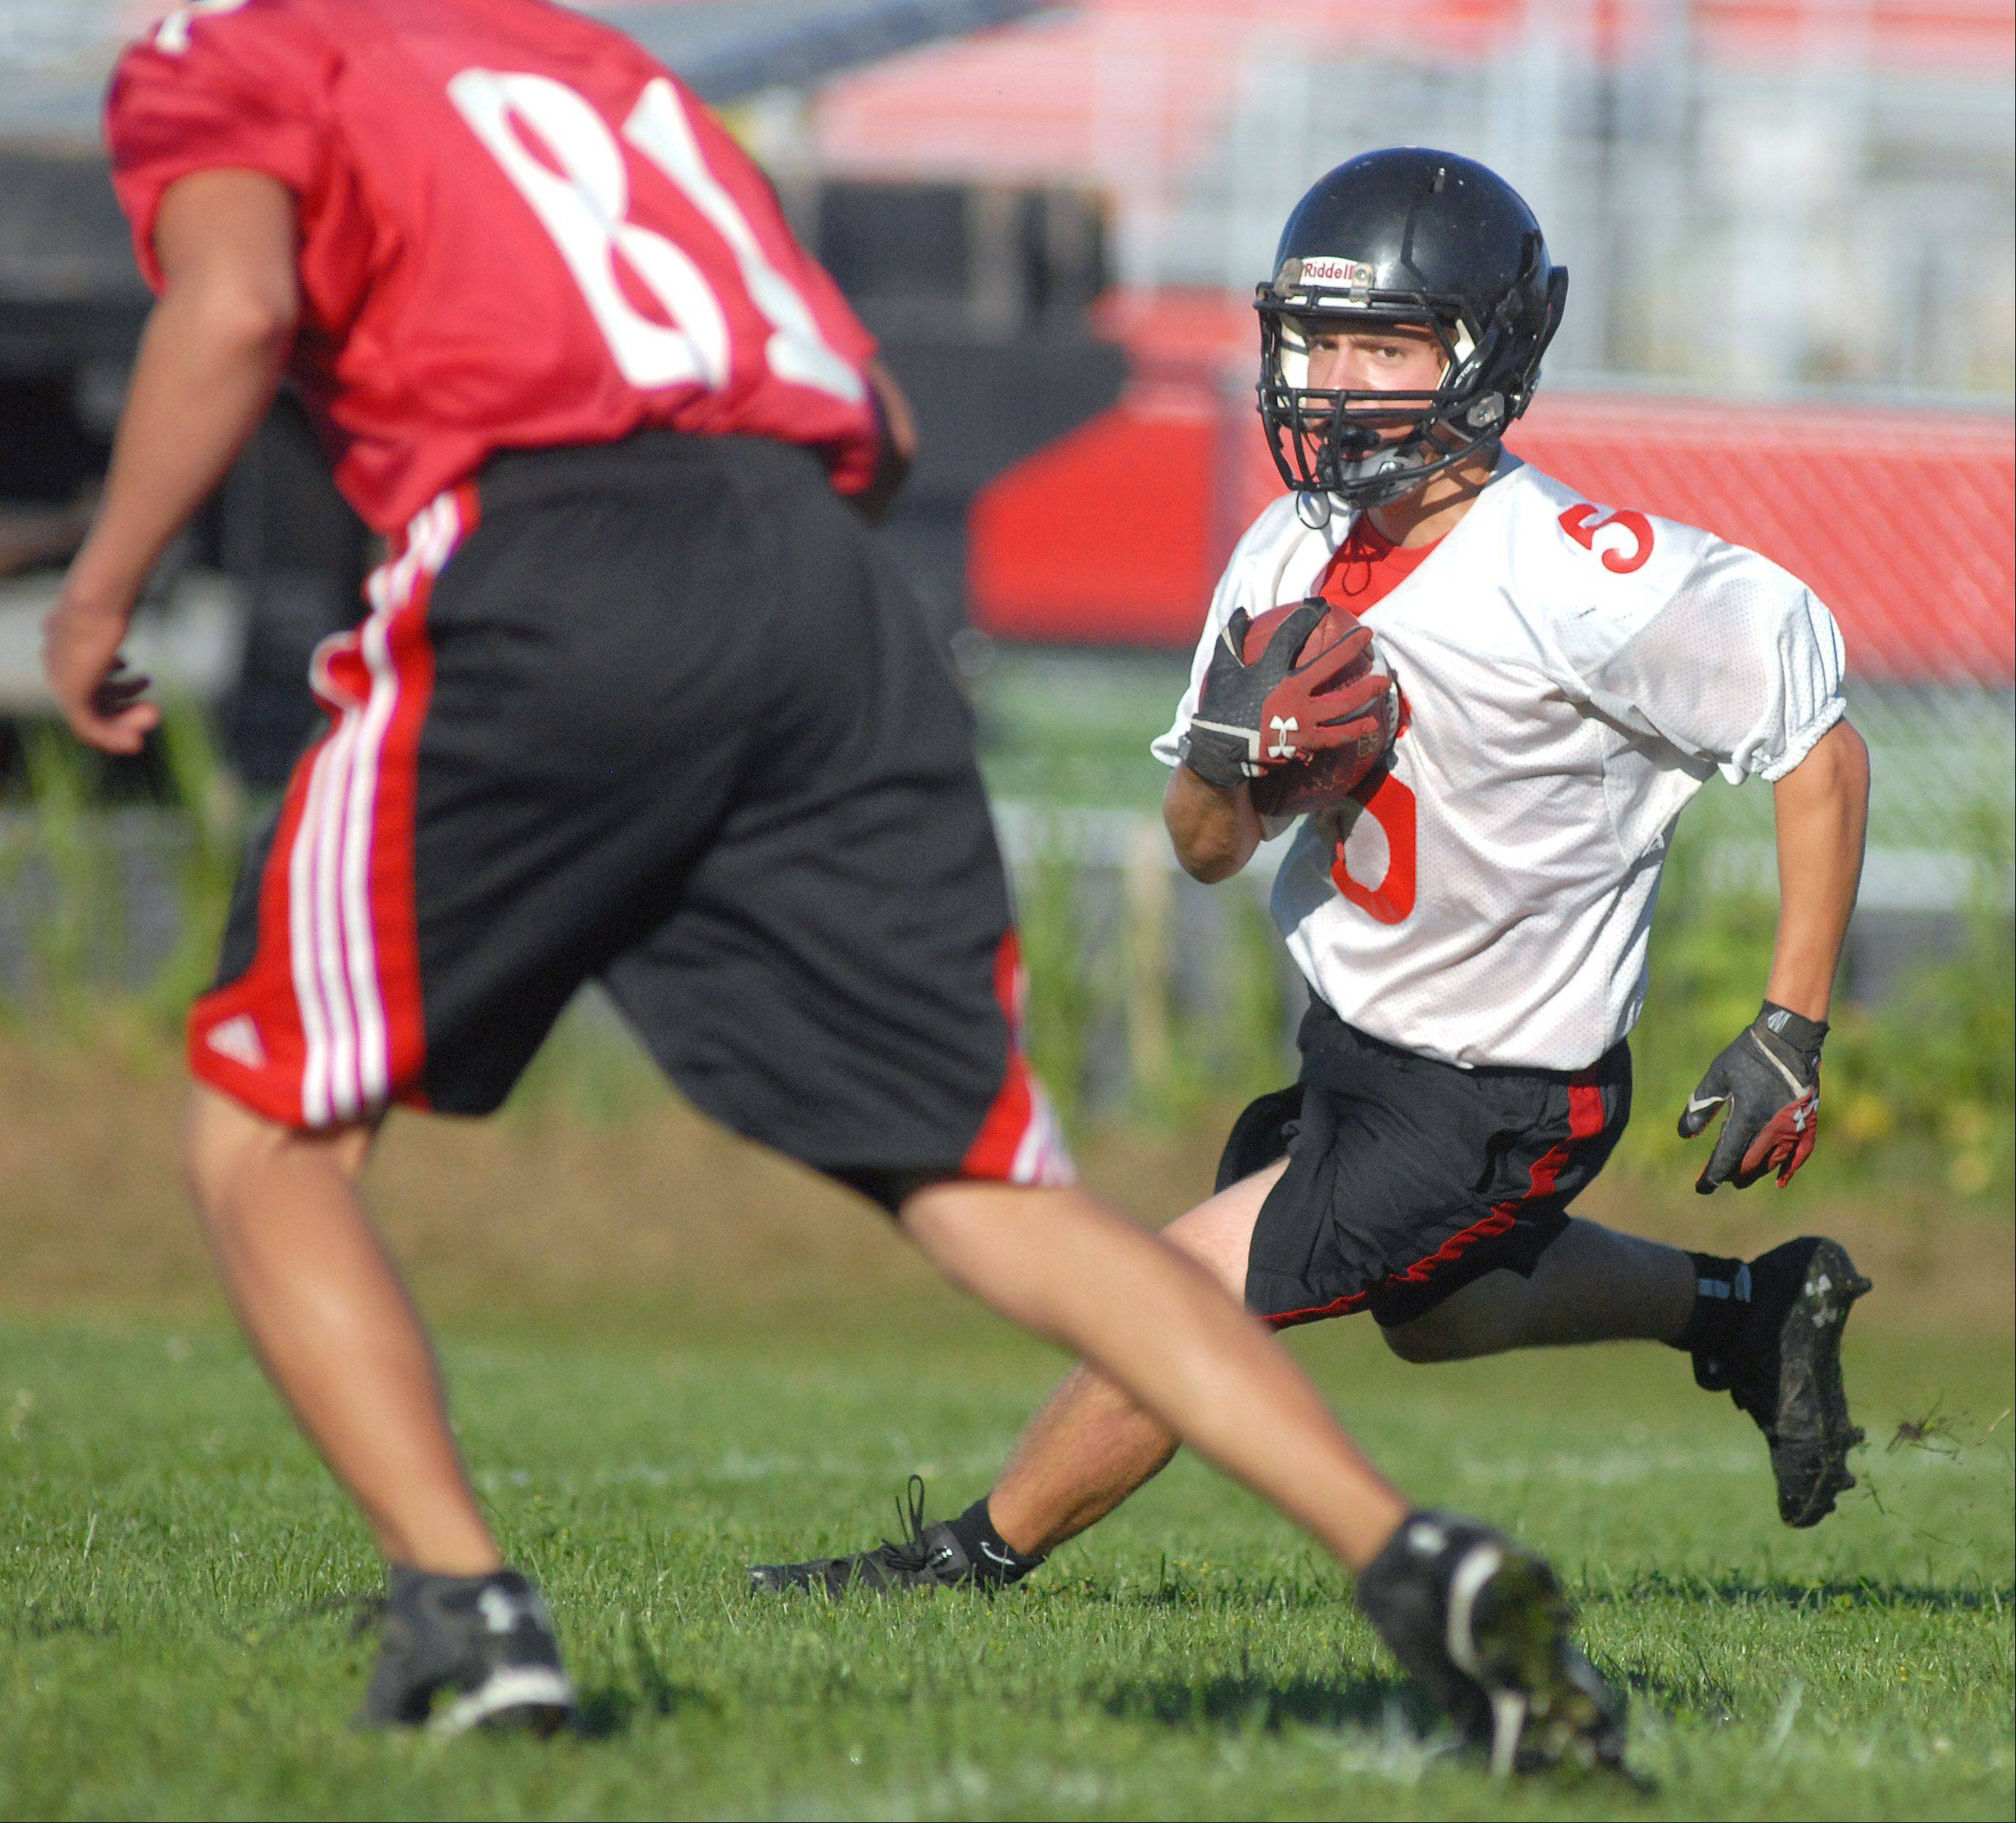 Senior Jake Scalise looks to avoid junior Conner Young during varsity football's first day of practice at Huntley High School on Wednesday, August 14.